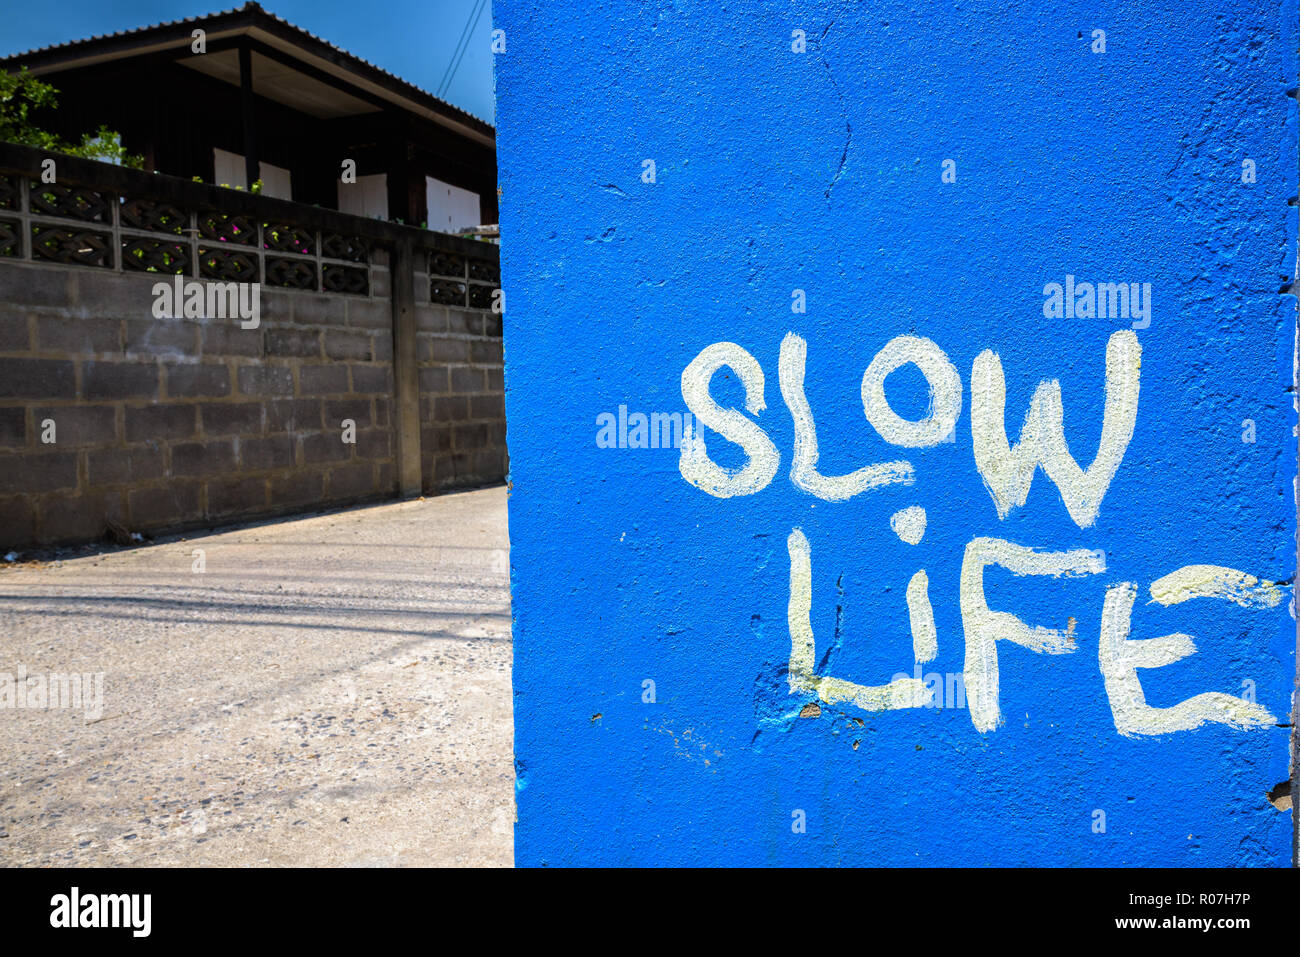 Blue painted with slow life text written on wall Stock Photo